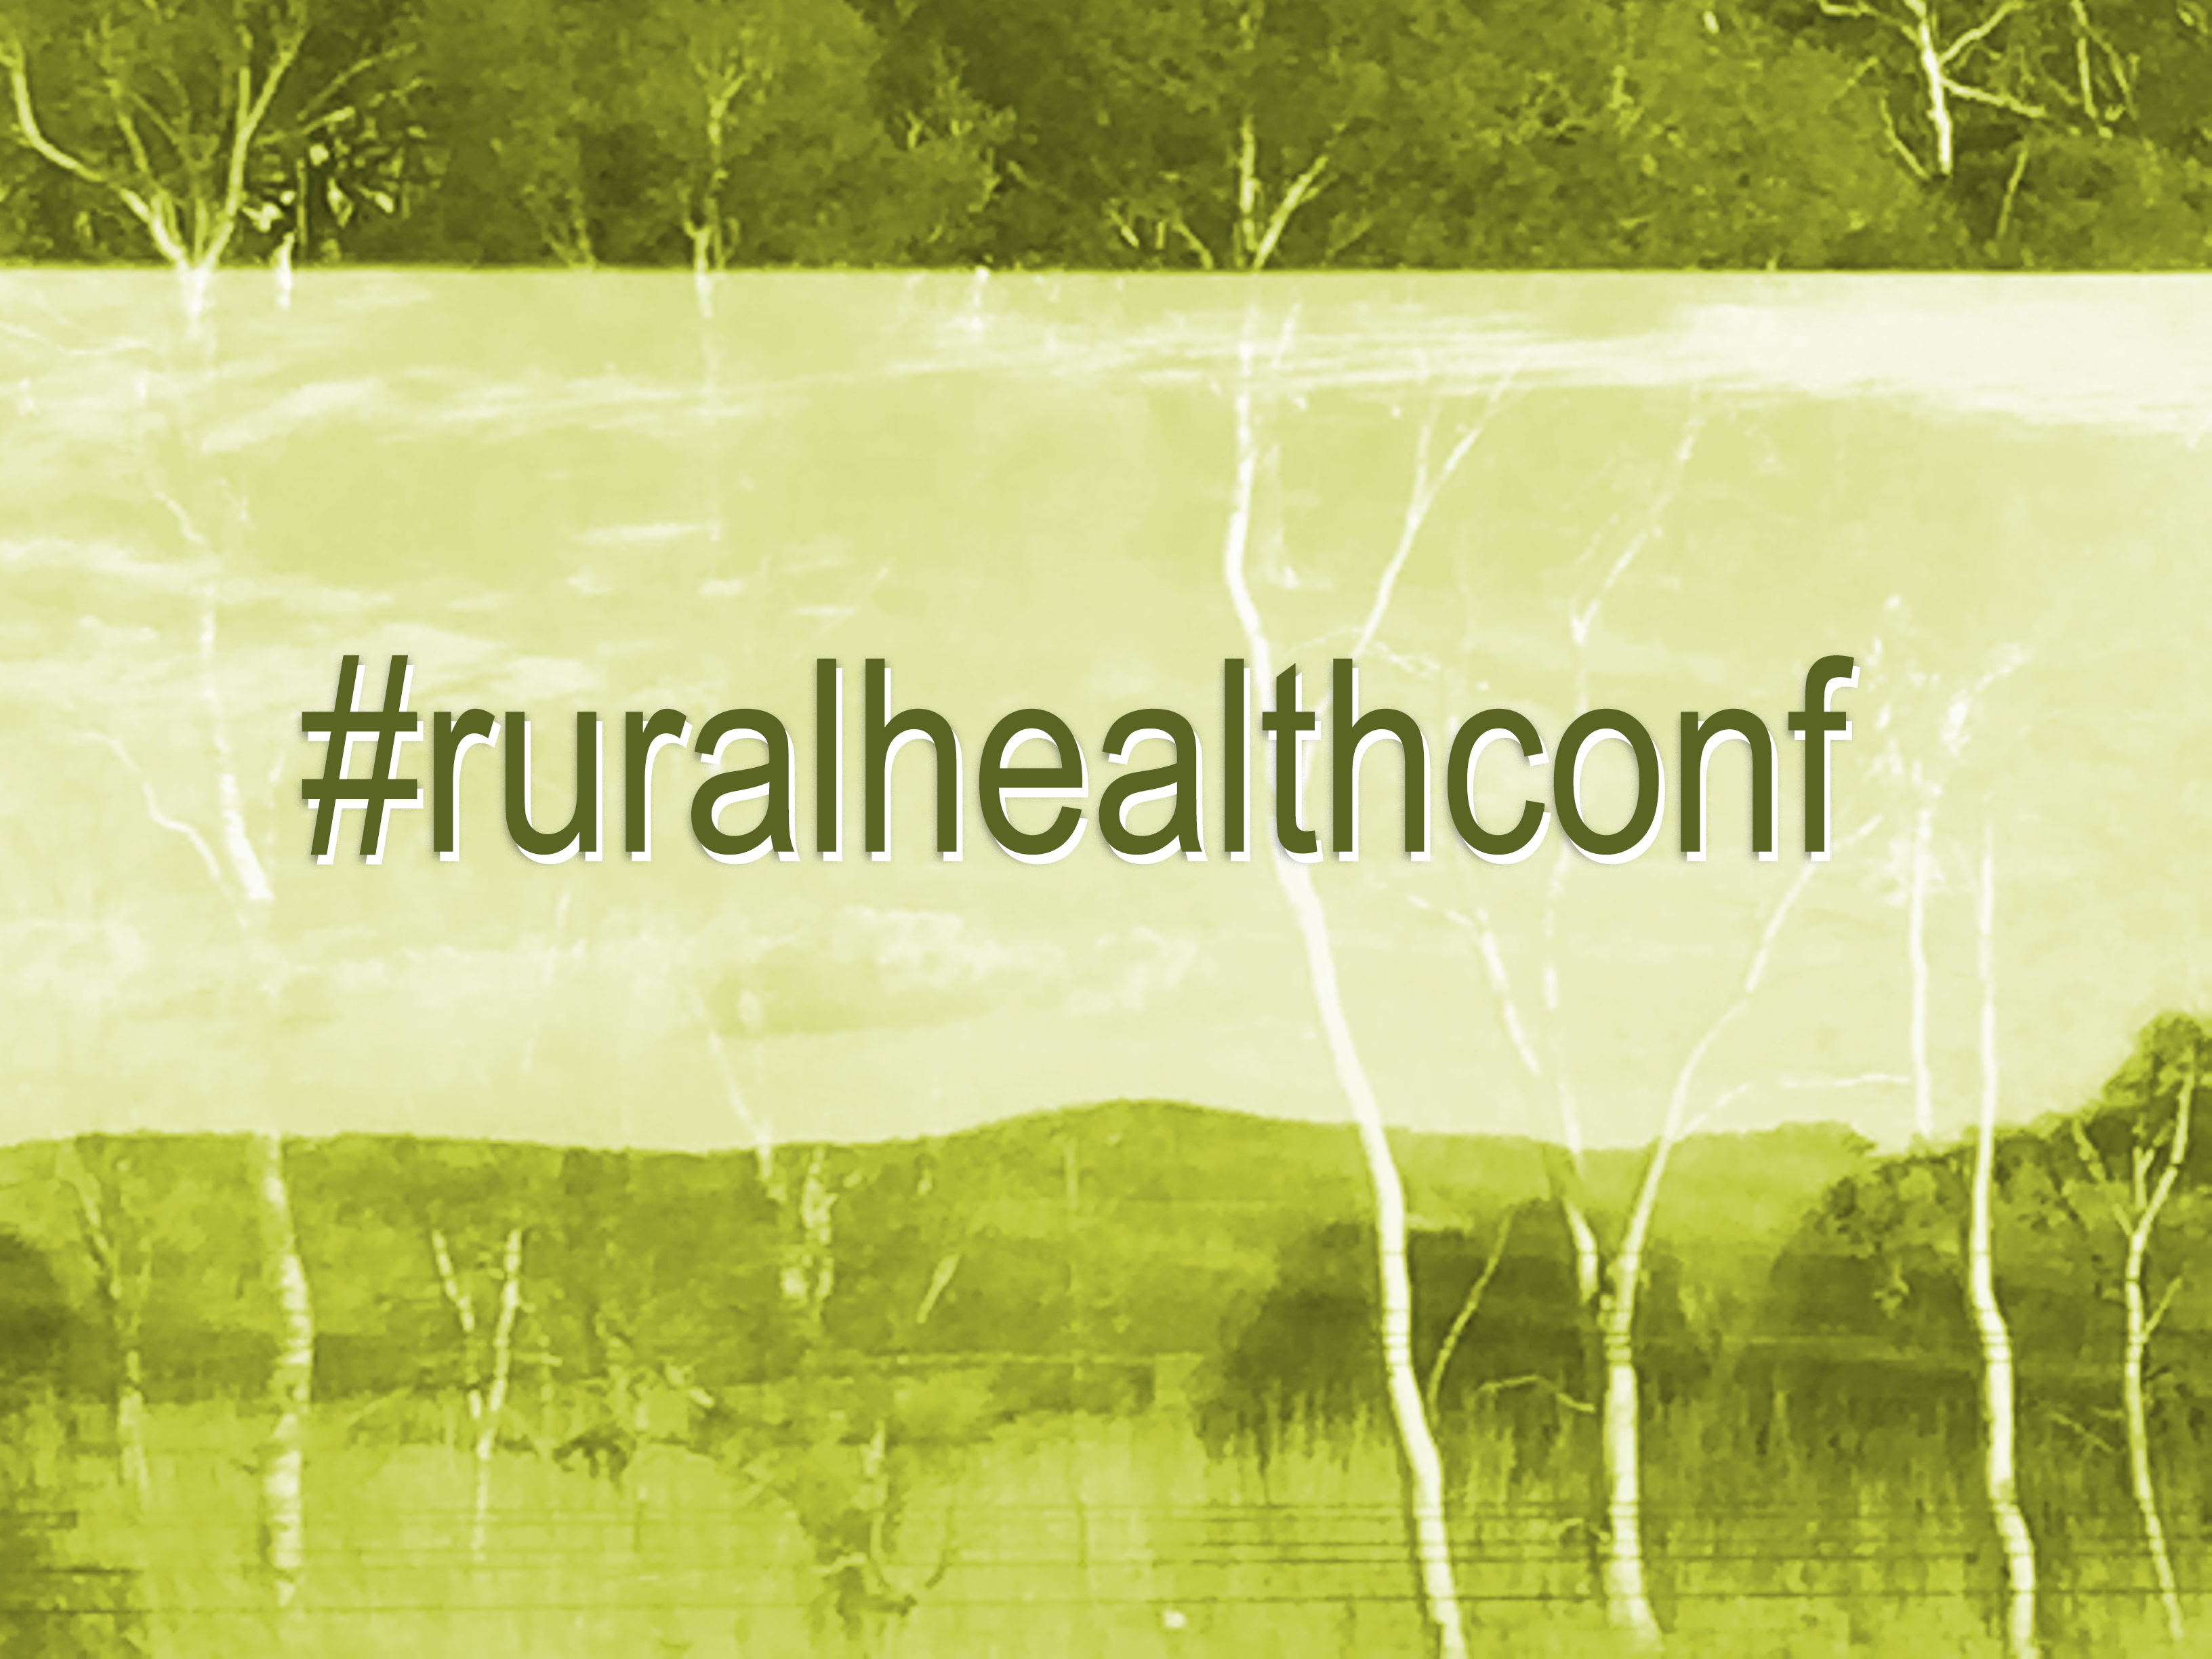 What's coming up at the National Rural Health Conference in Cairns this week?